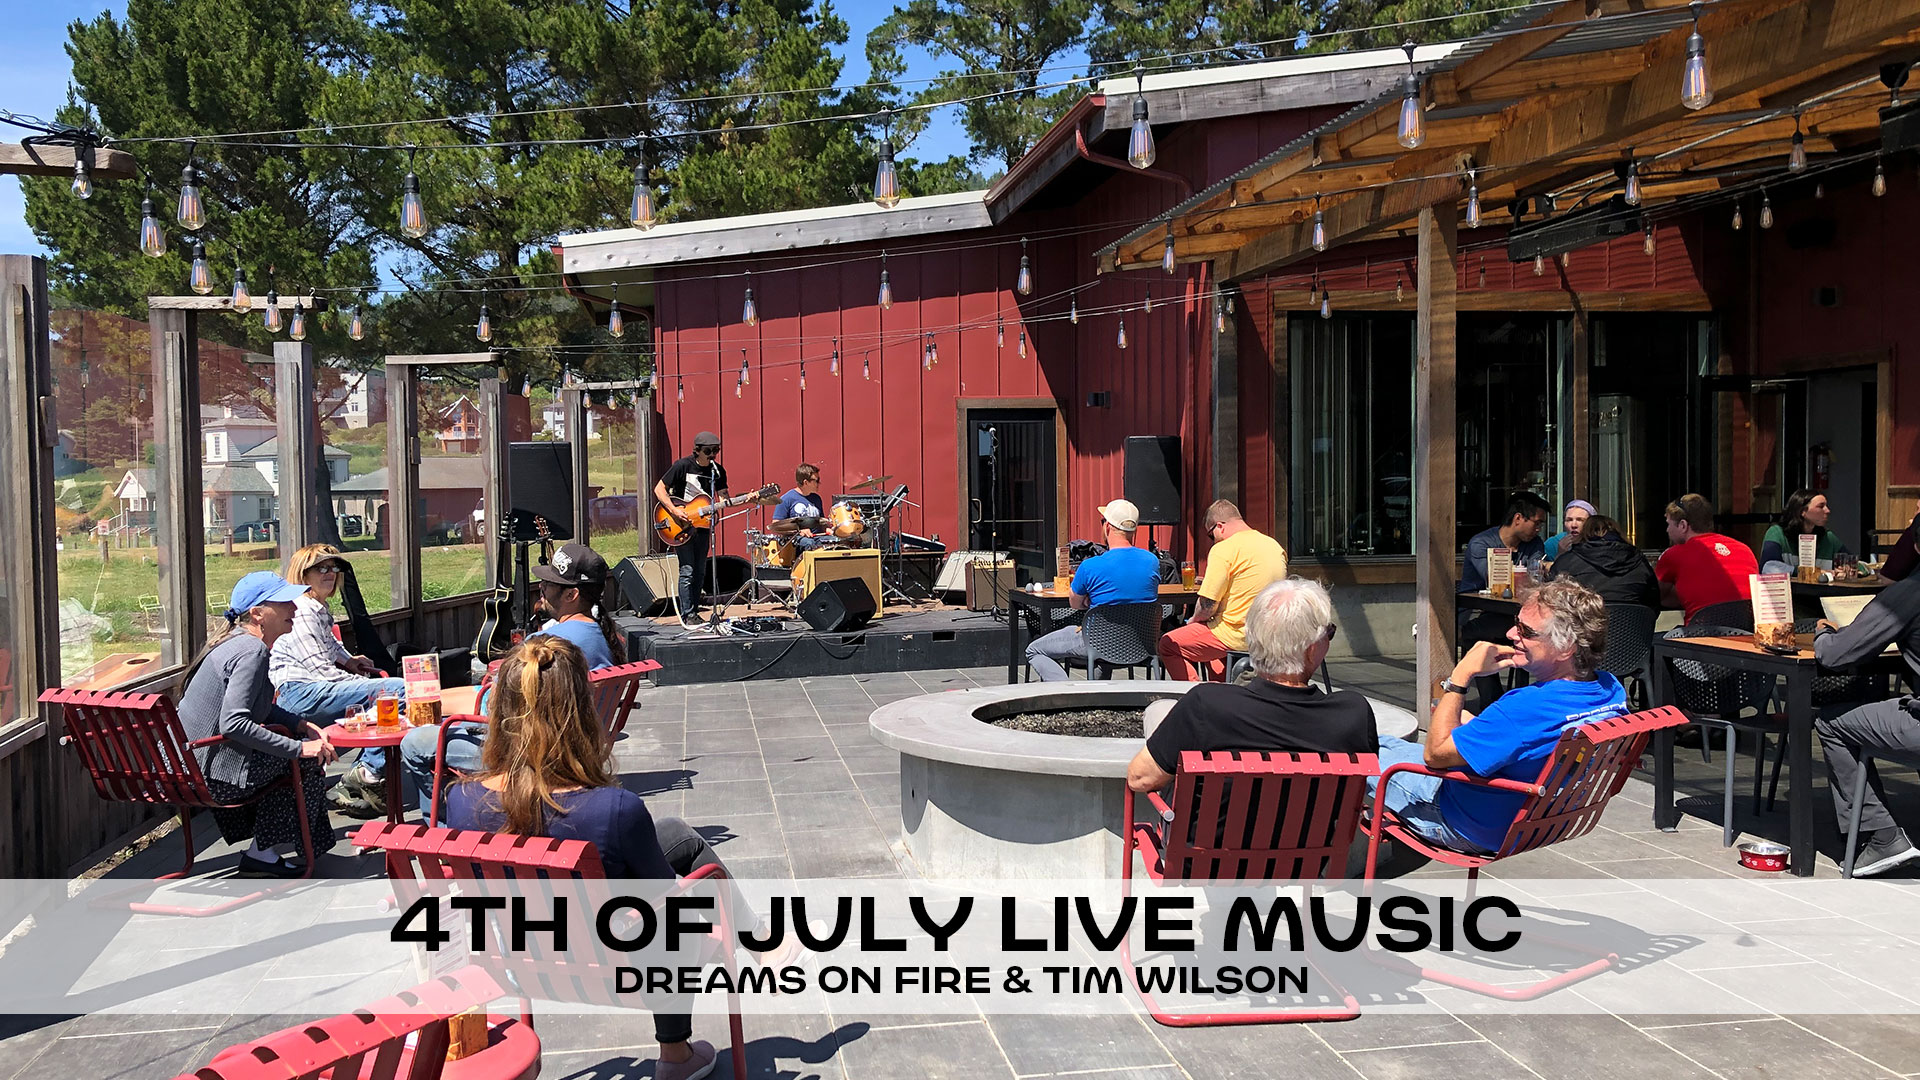 4th-music-dreams-on-fire-tim-wilson